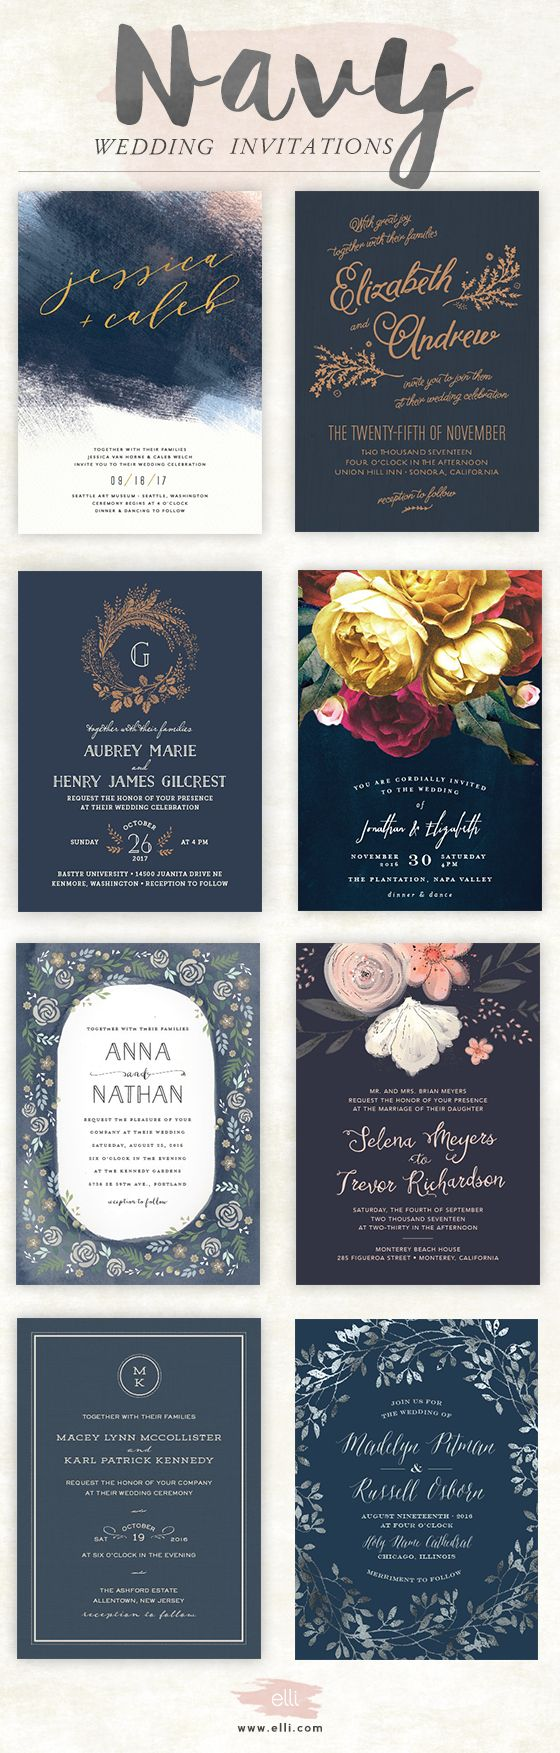 sample of wedding invitation letter%0A Now trending  navy wedding invitations from Elli com